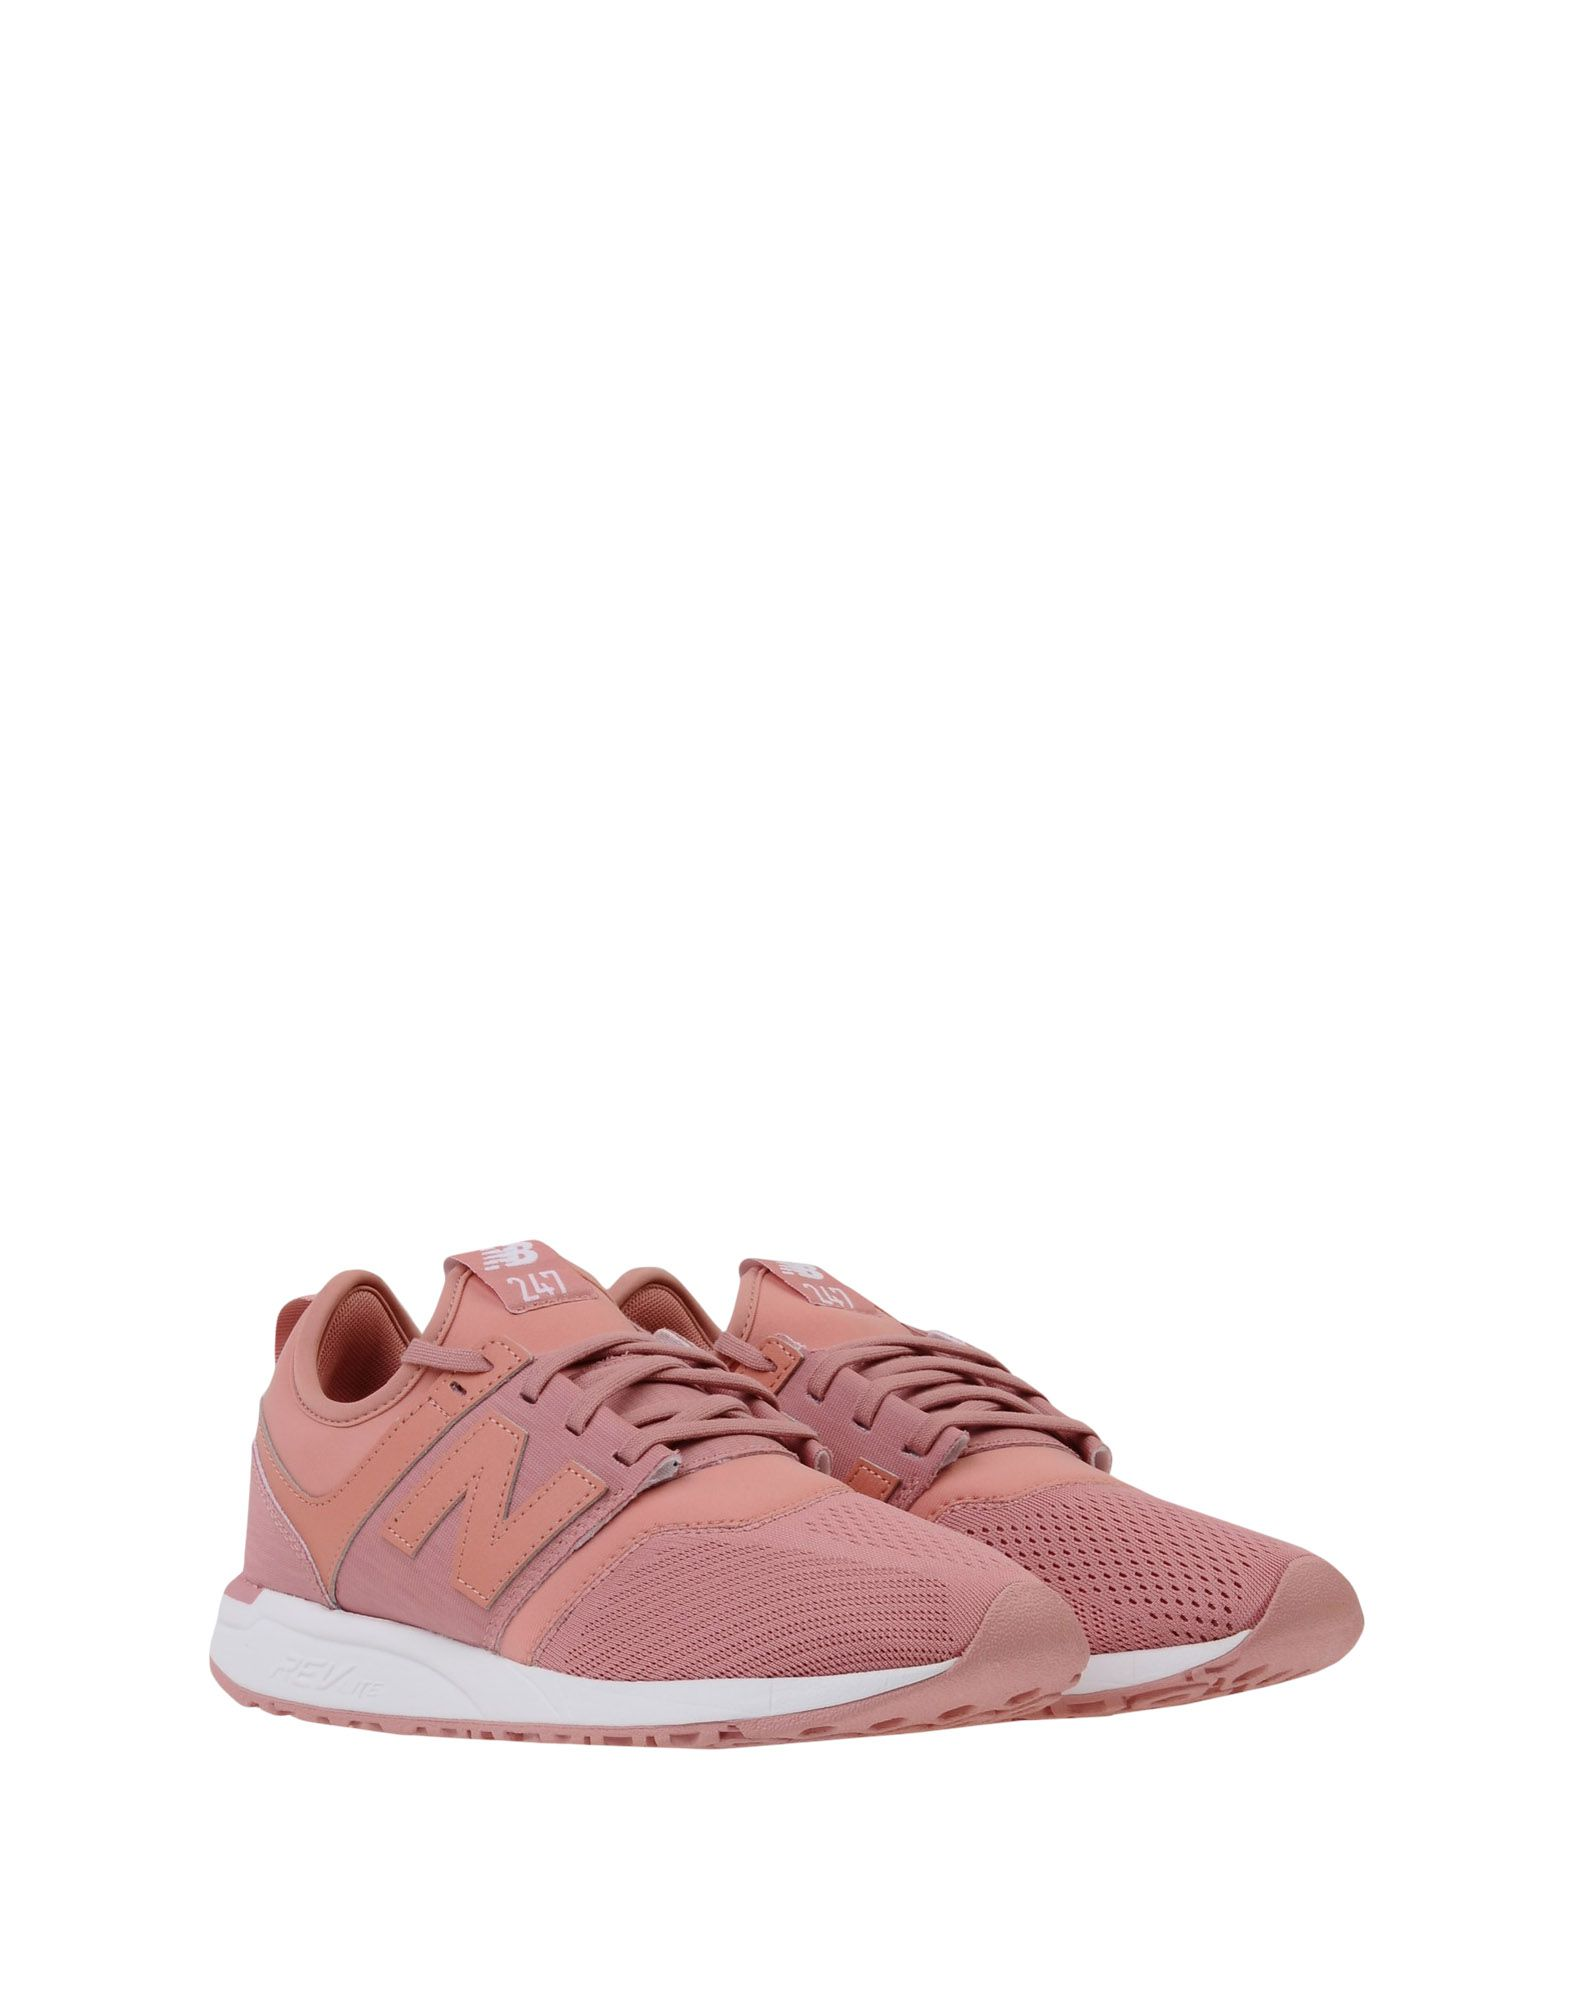 Sneakers New Balance 247 Techy Mesh - Femme - Sneakers New Balance sur